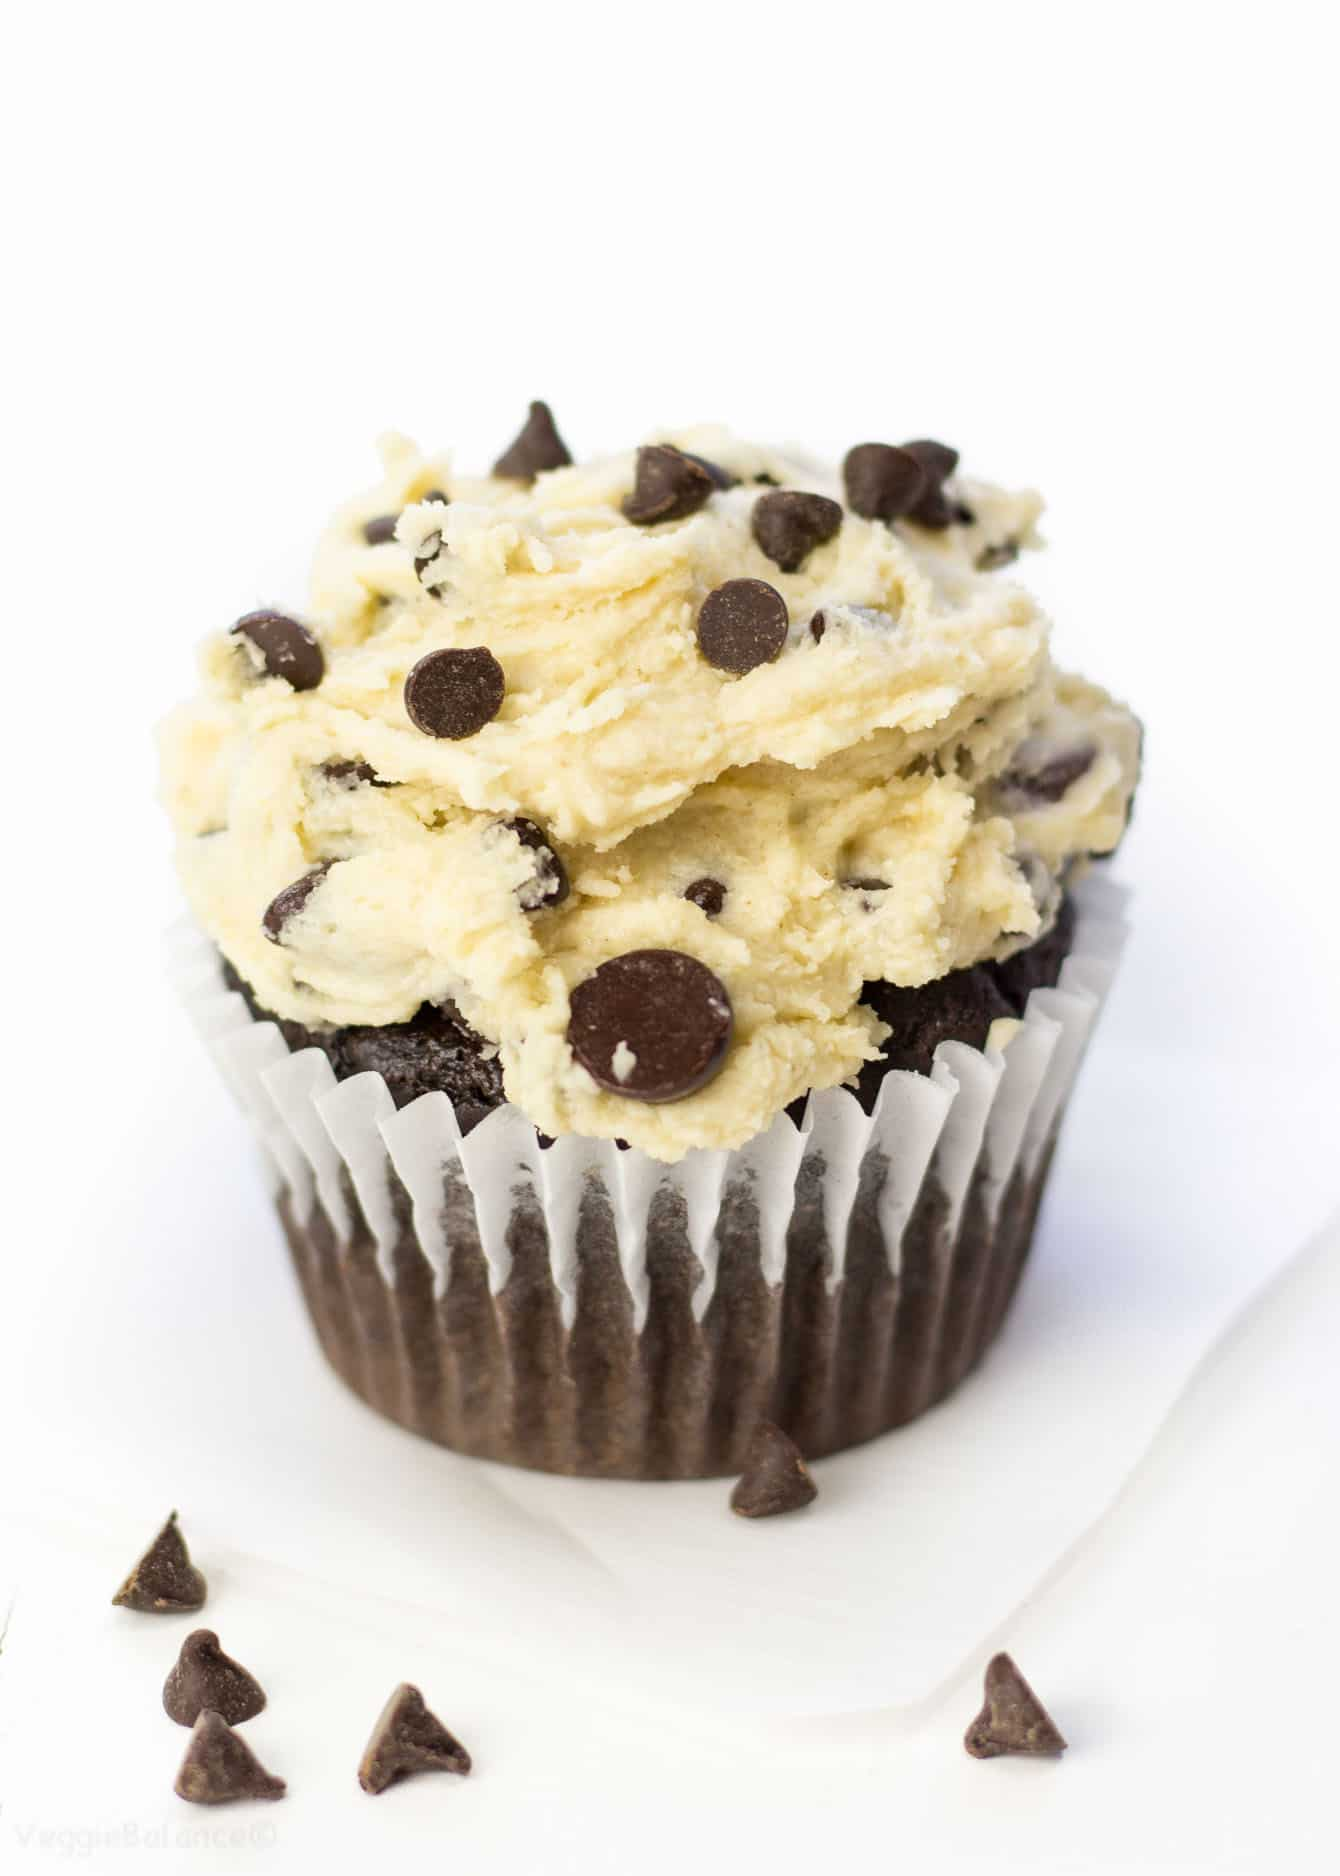 Chocolate Chip Cookie Dough Cupcakes - Veggiebalance.com